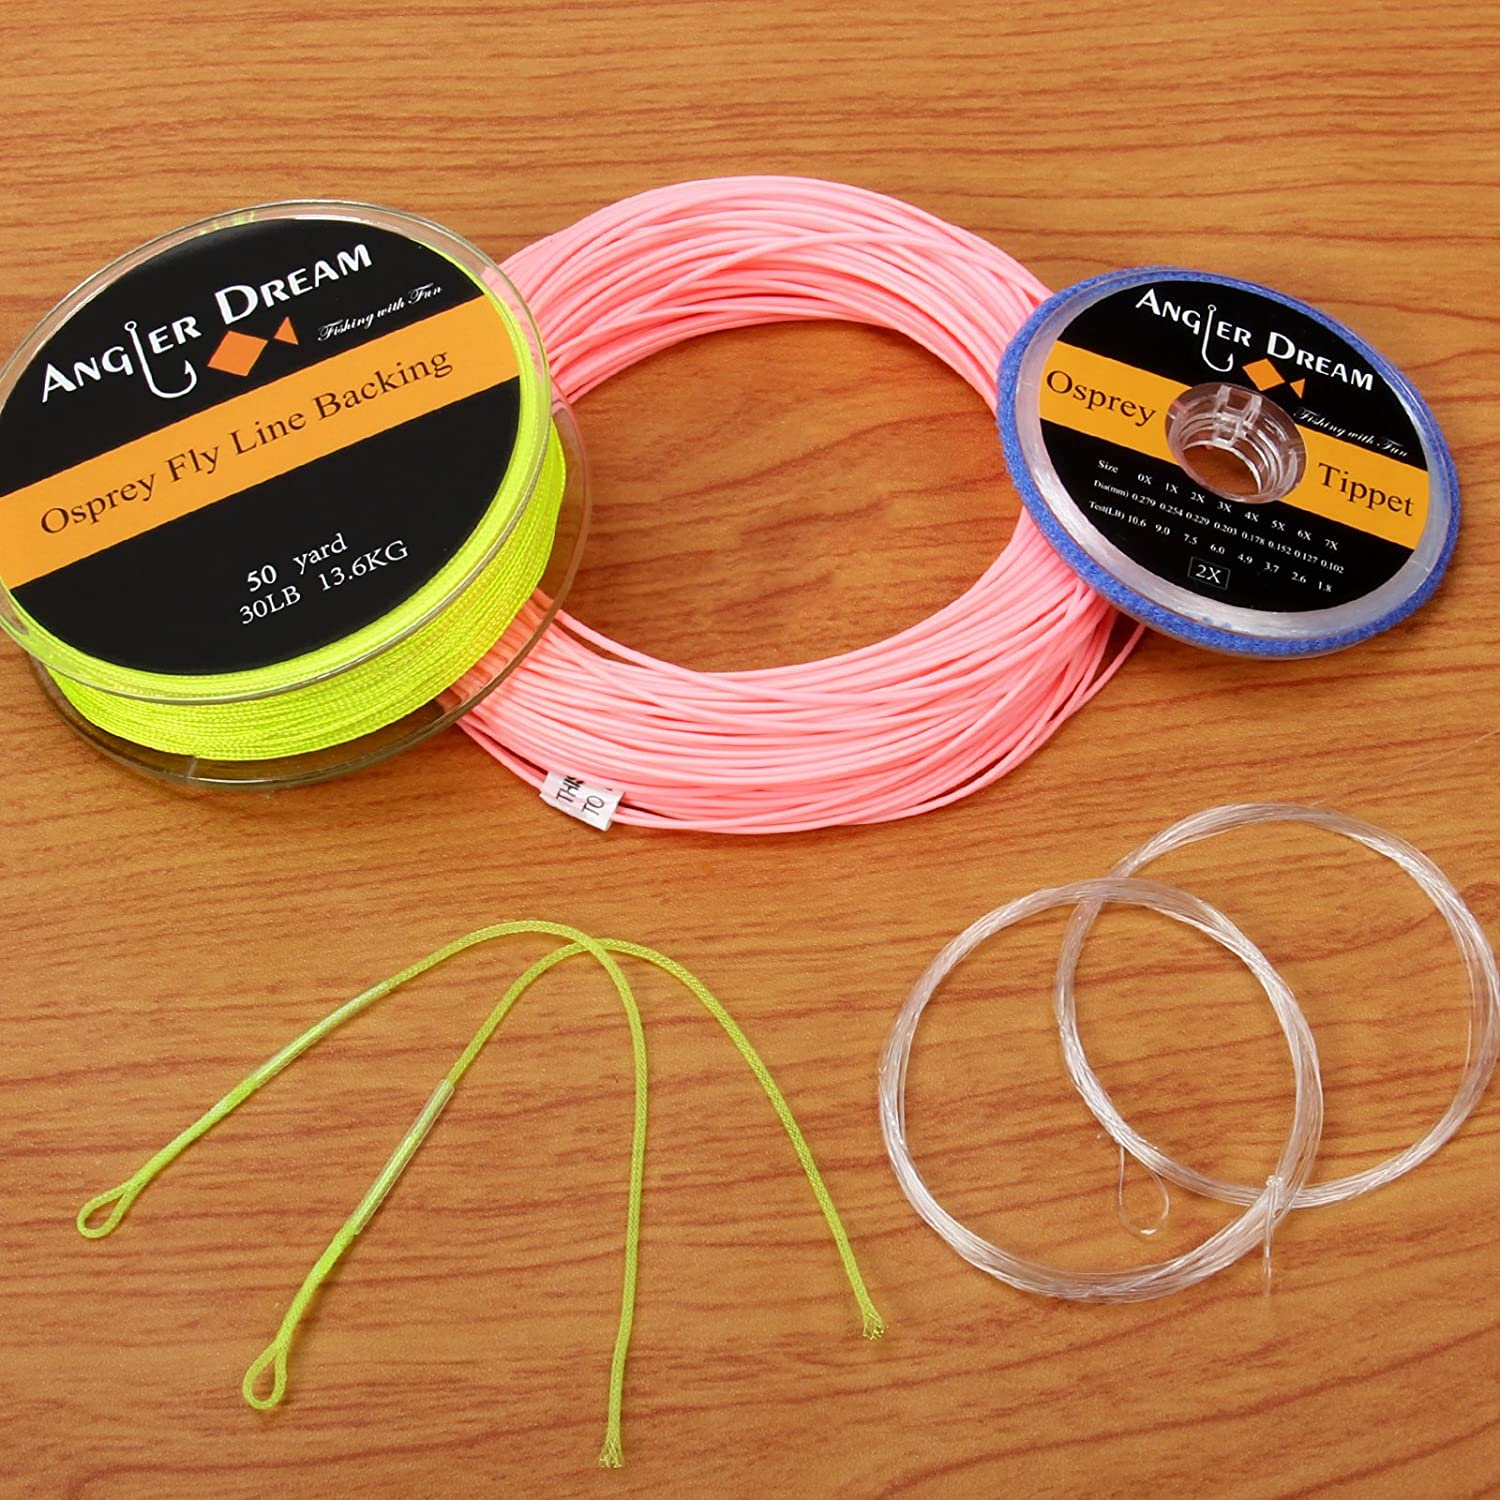 ANGLER DREAM AnglerDream WF Fly Fishing Line Kit 6 4 Same day shipping 7 3 2 1 Product 5 8